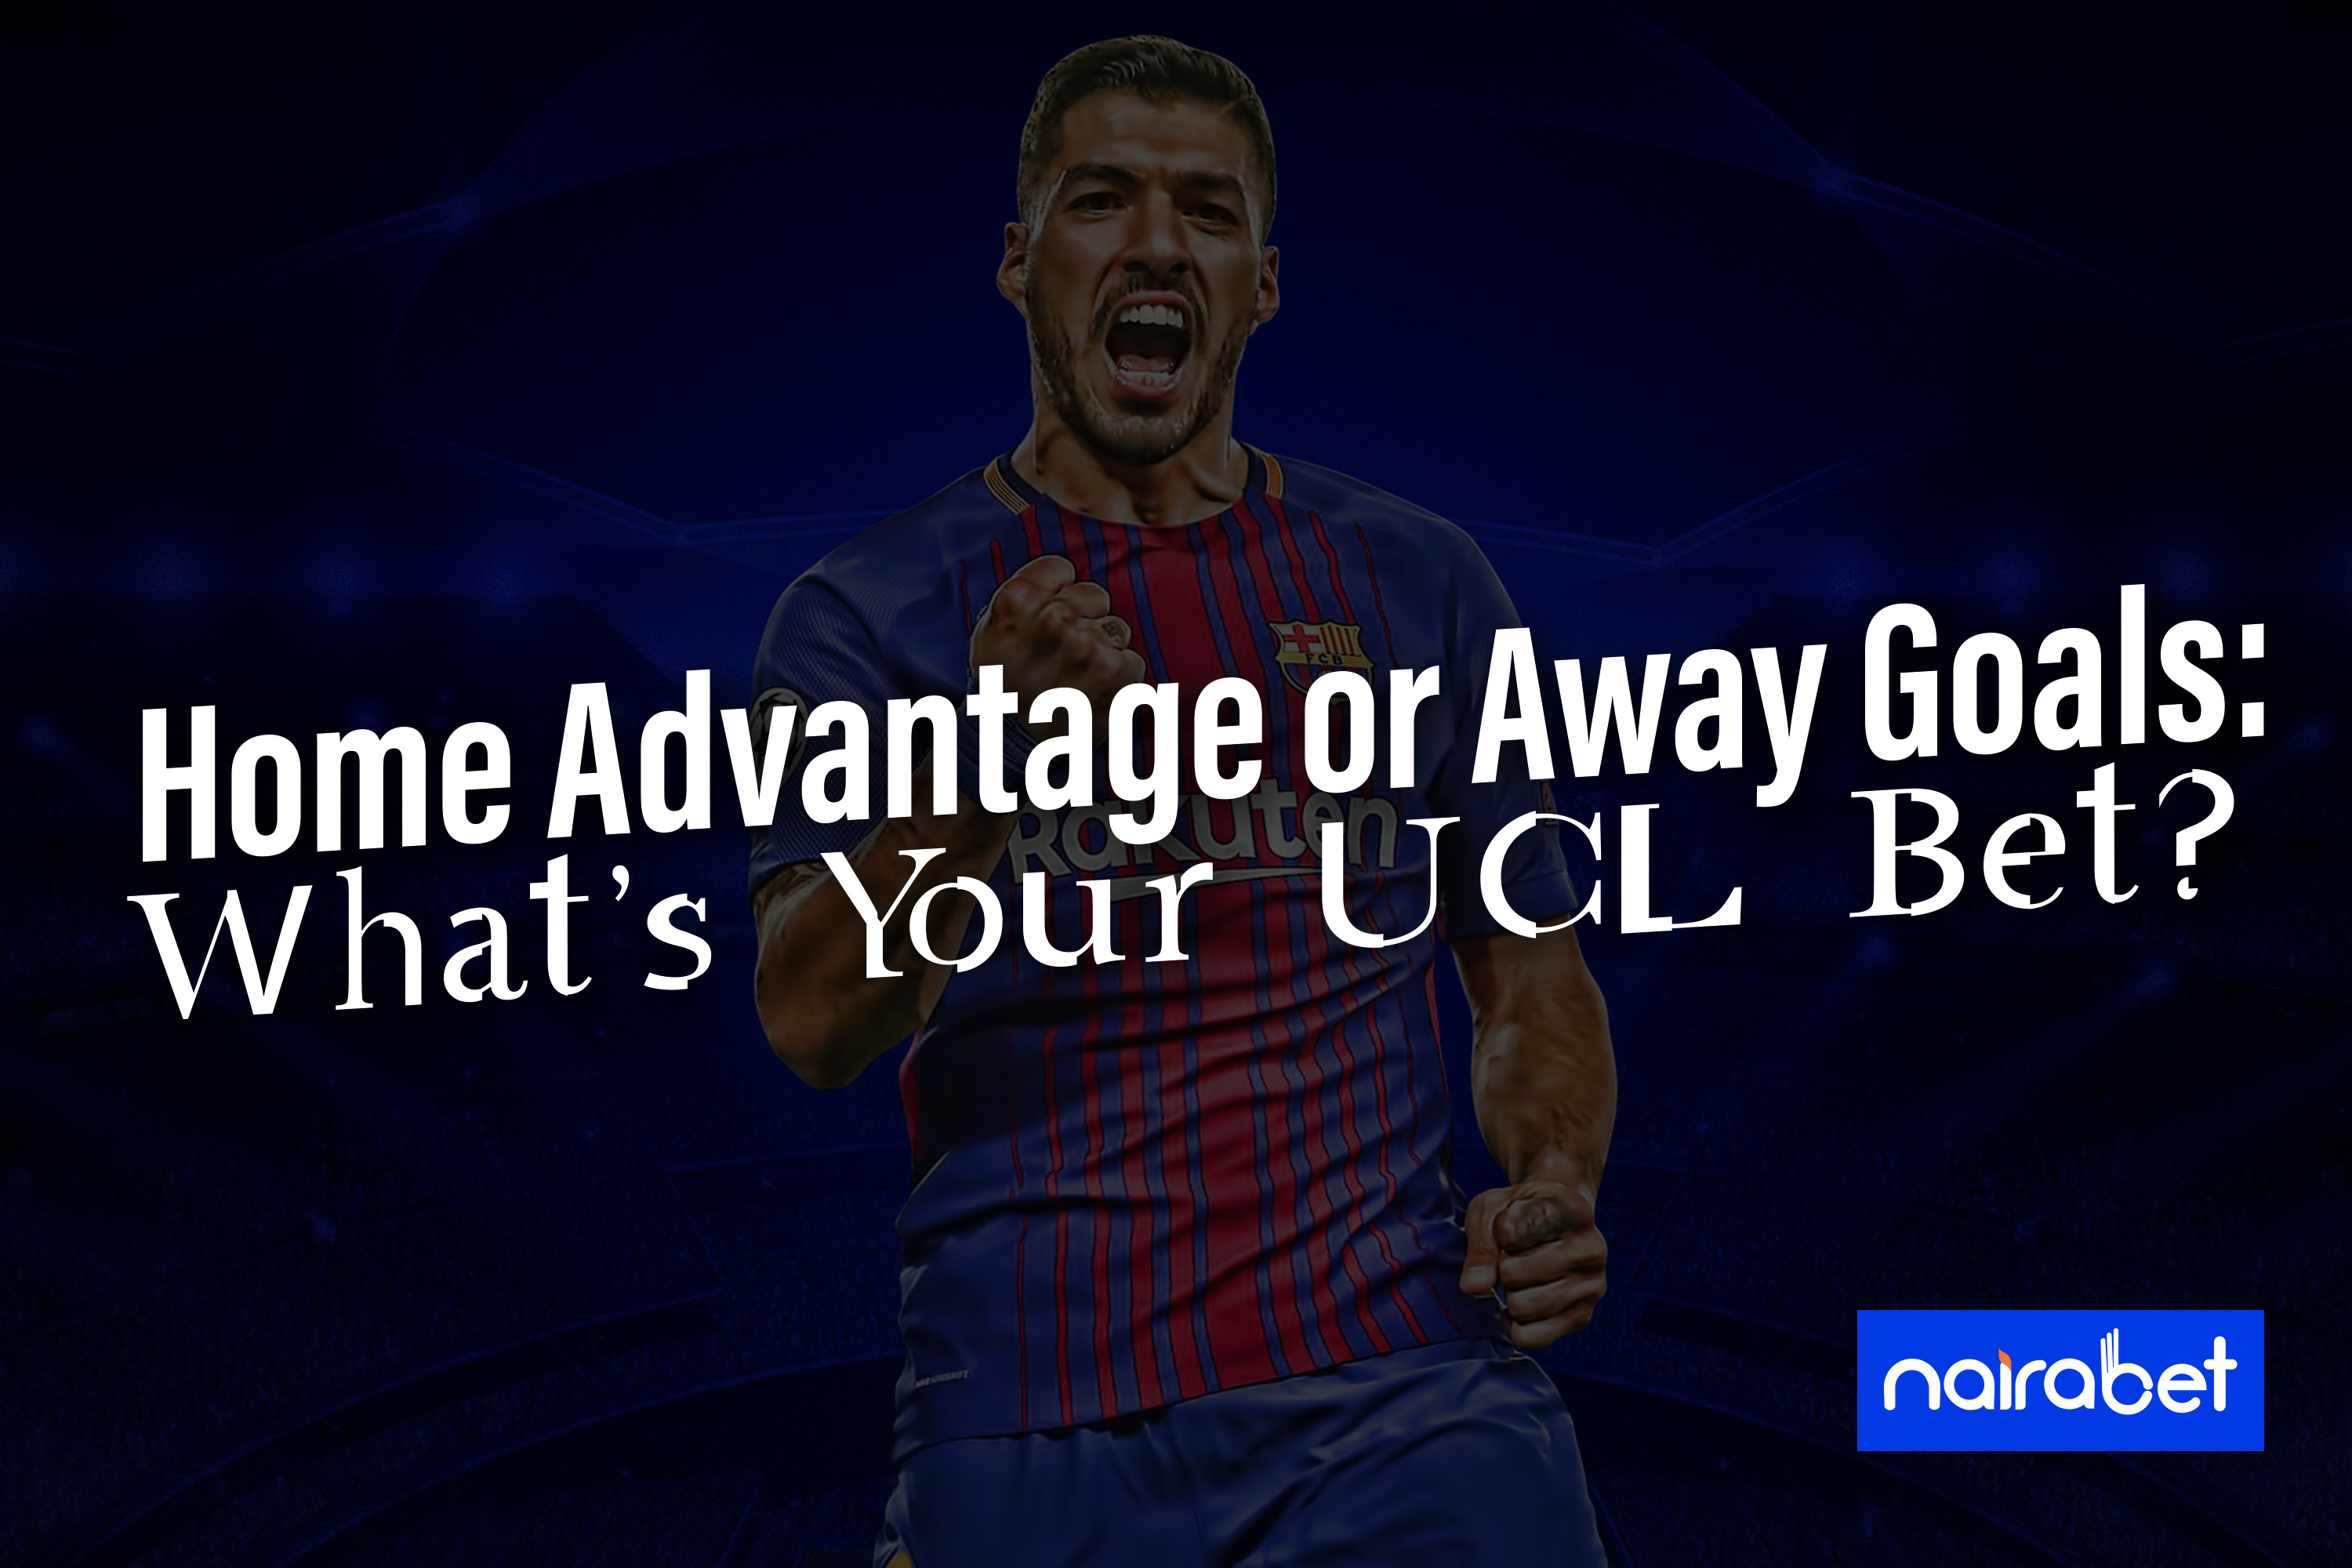 UCL bet; home advantage or away goal